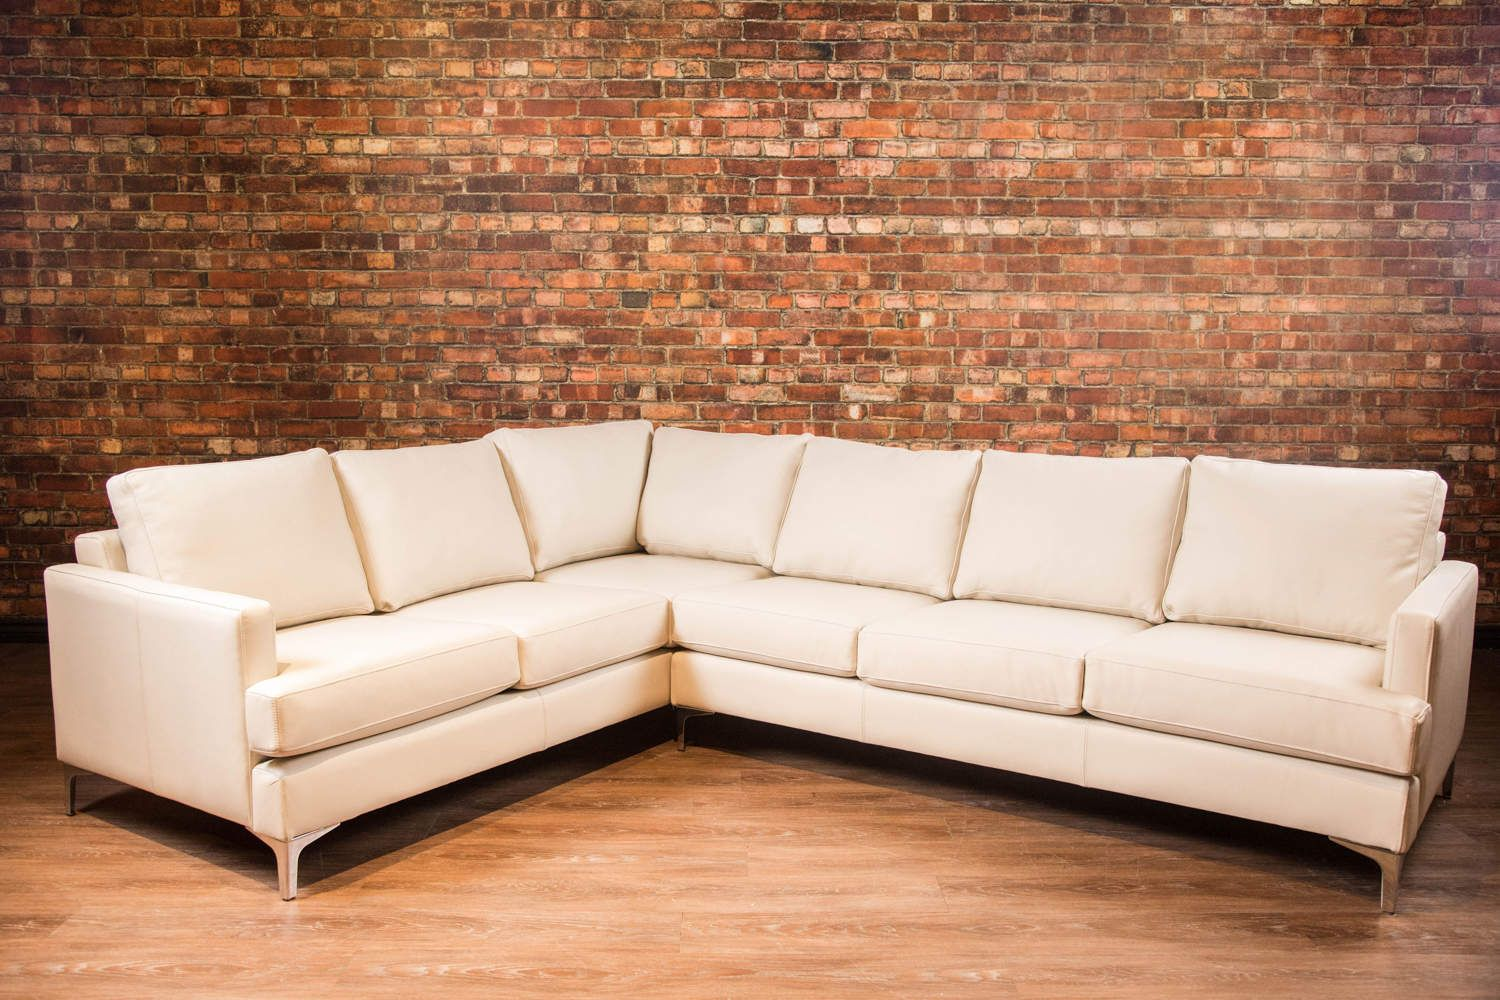 sectional sofas nyc showroom sofa urban dictionary new york condo series sectionals leather custom furniture making